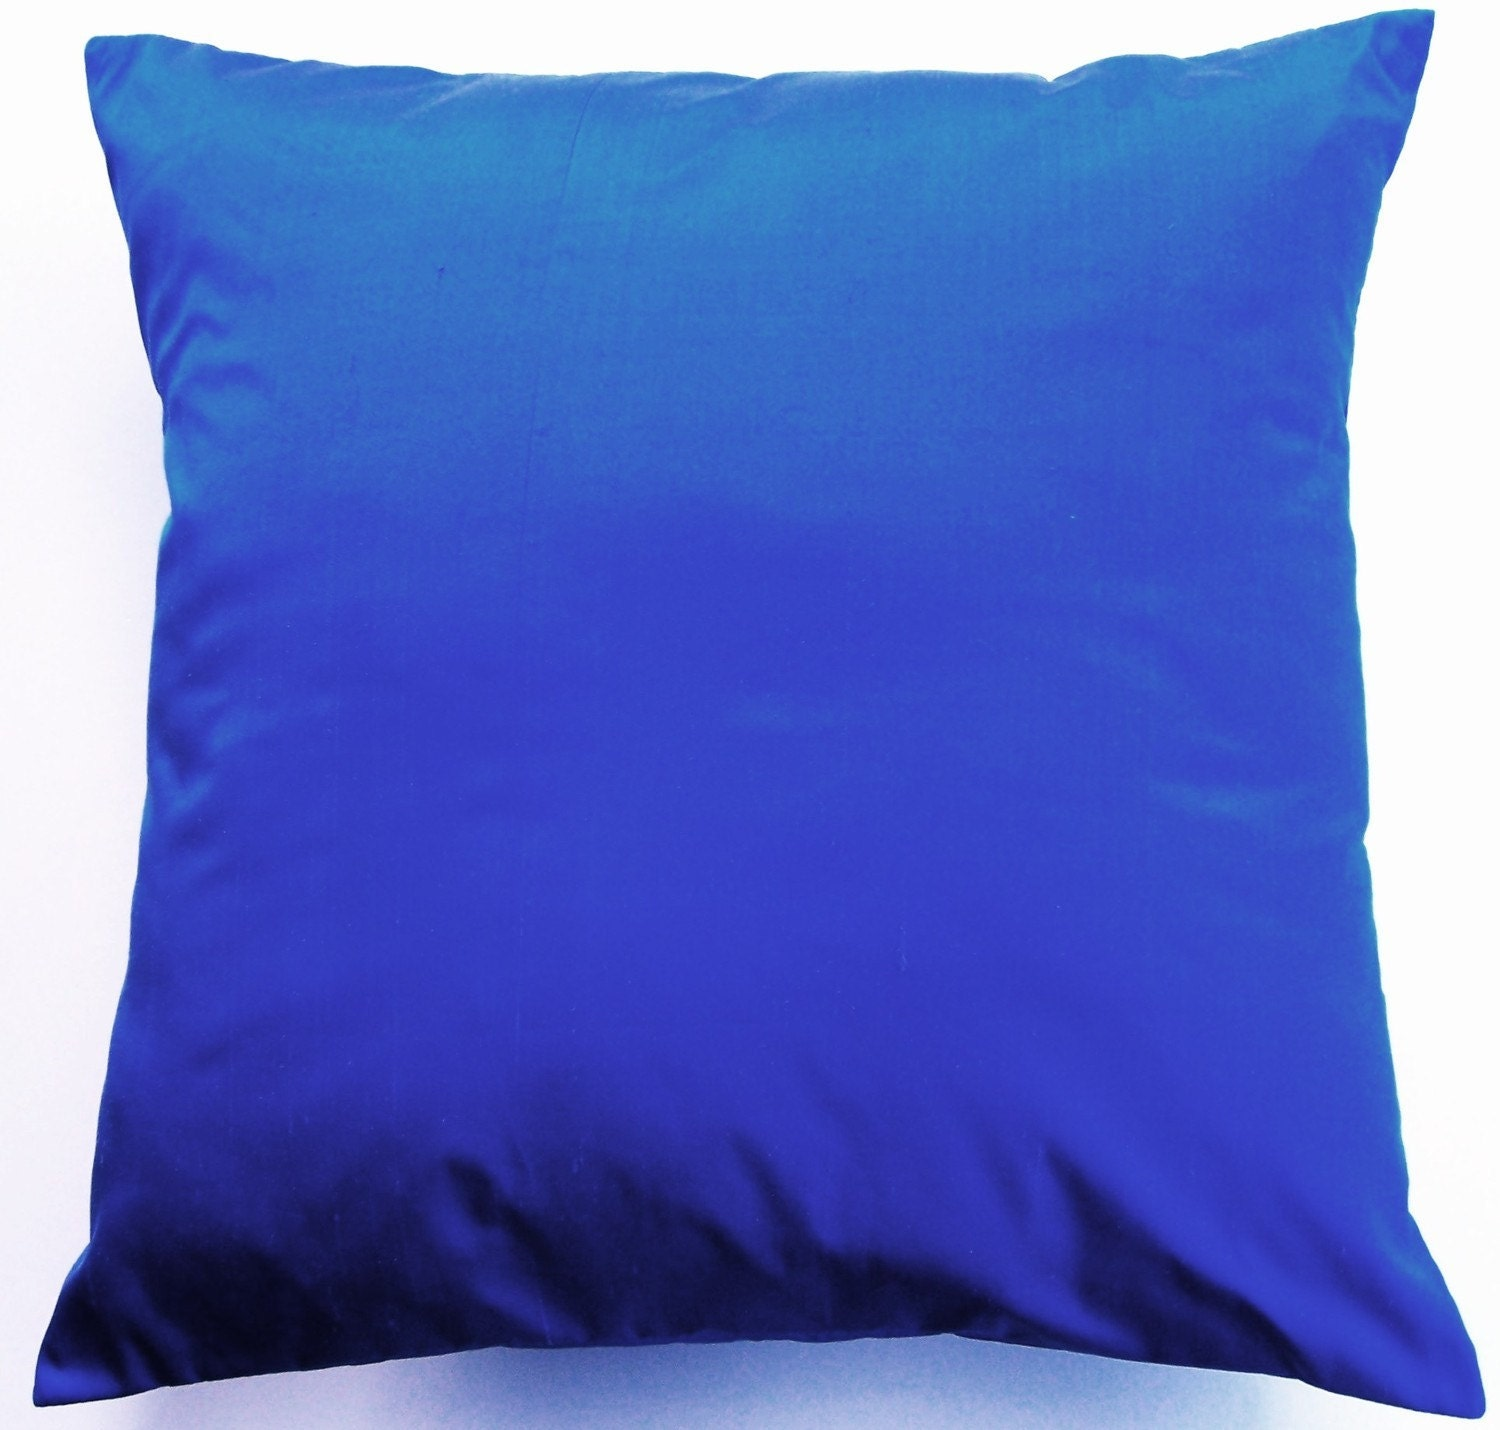 Decorative Pillows For Blue Couch : Blue Pillow Cover Silk Cobalt Blue Throw Pillow by sassypillows